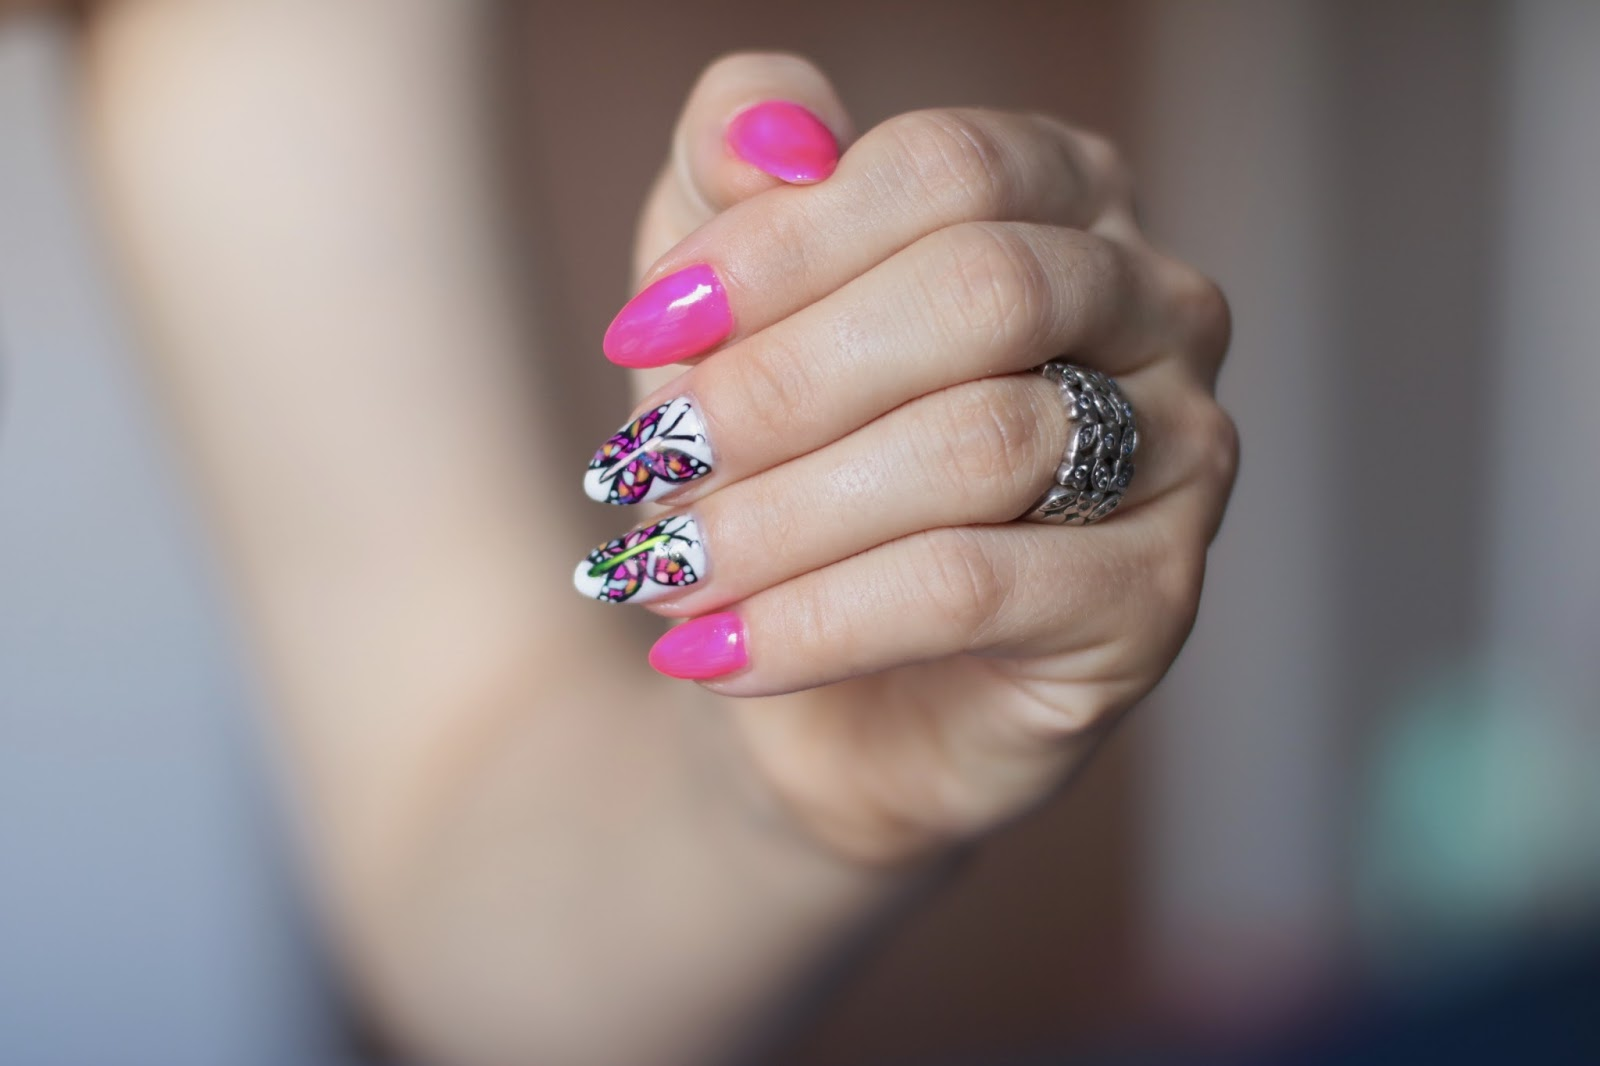 Summer Butterfly Nails - Witrażowe Motyle